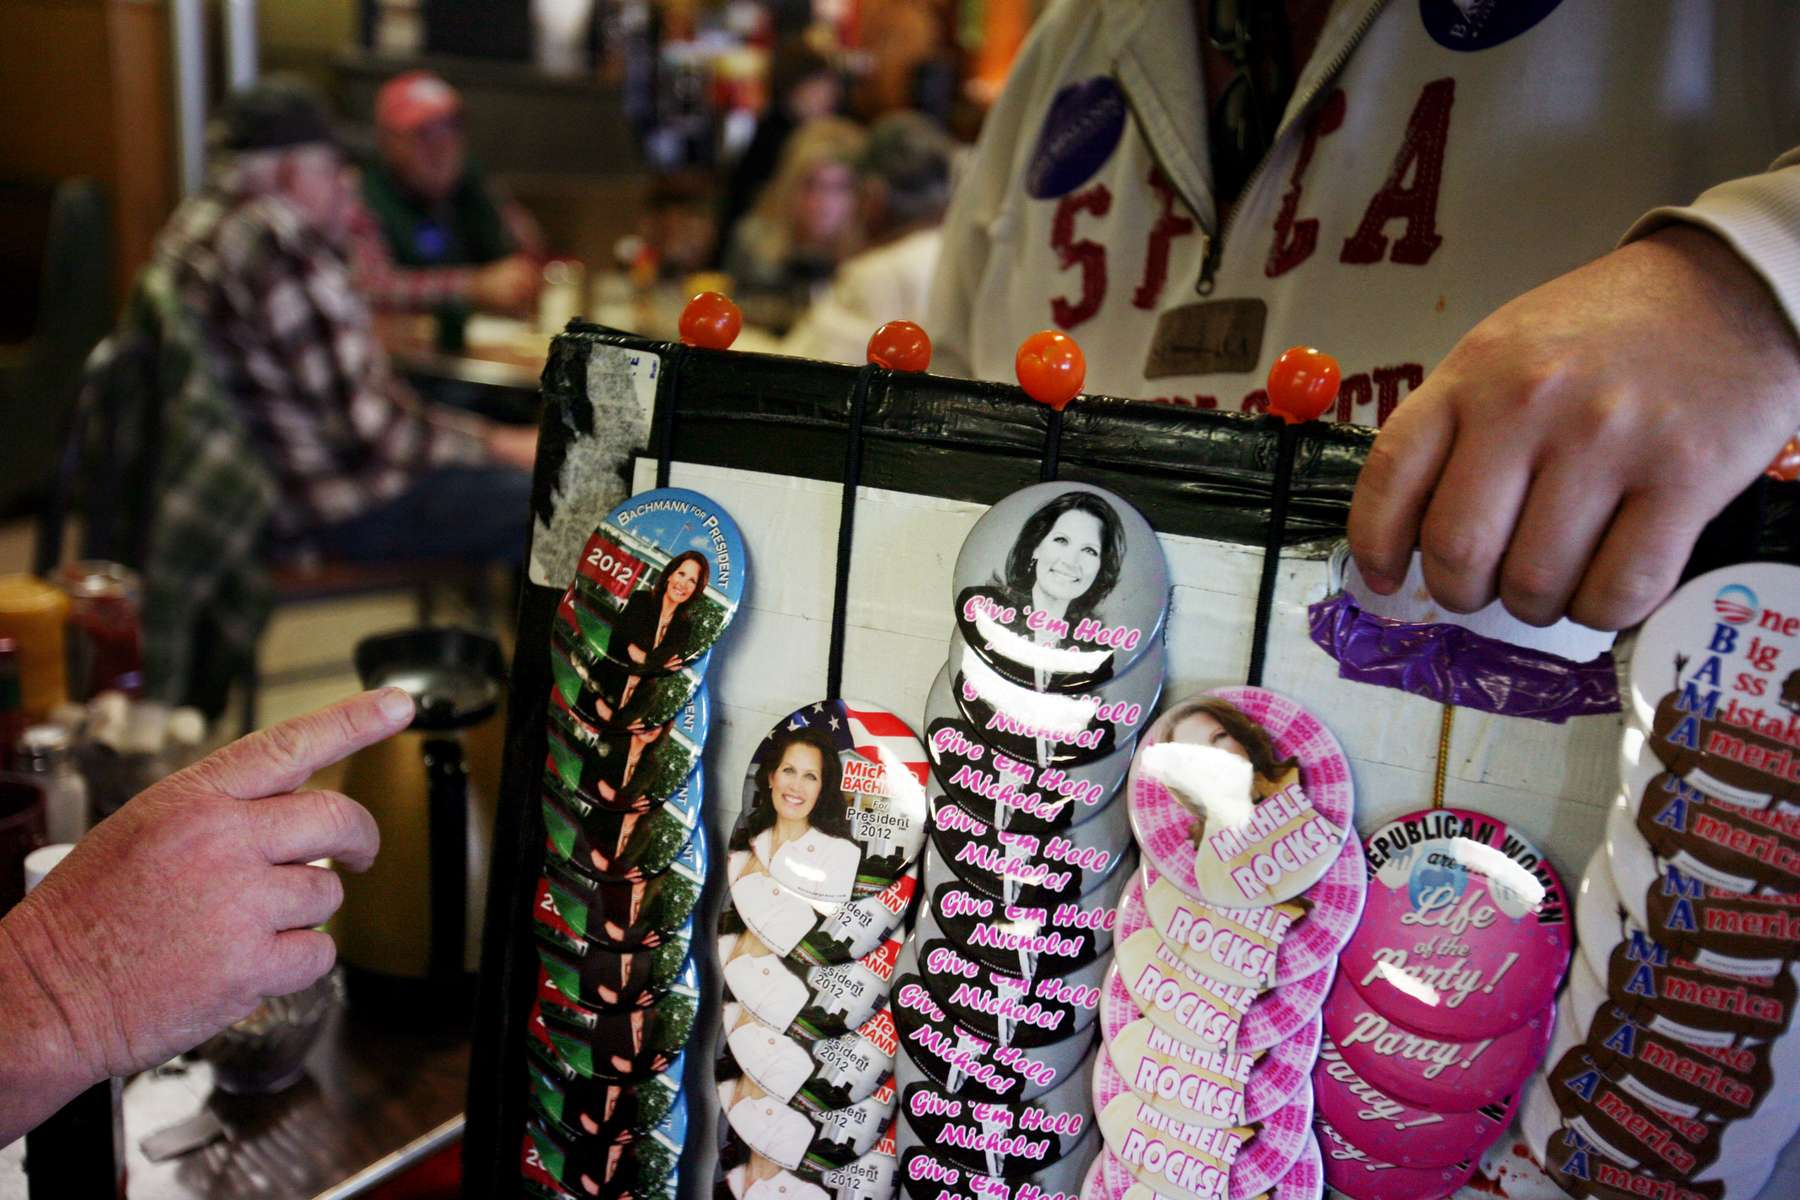 A Michele Bachmann supporter selects a button from a vendor during Bachmann\'s bus tour stop at Family Table Restaurant in Osceola, Iowa.